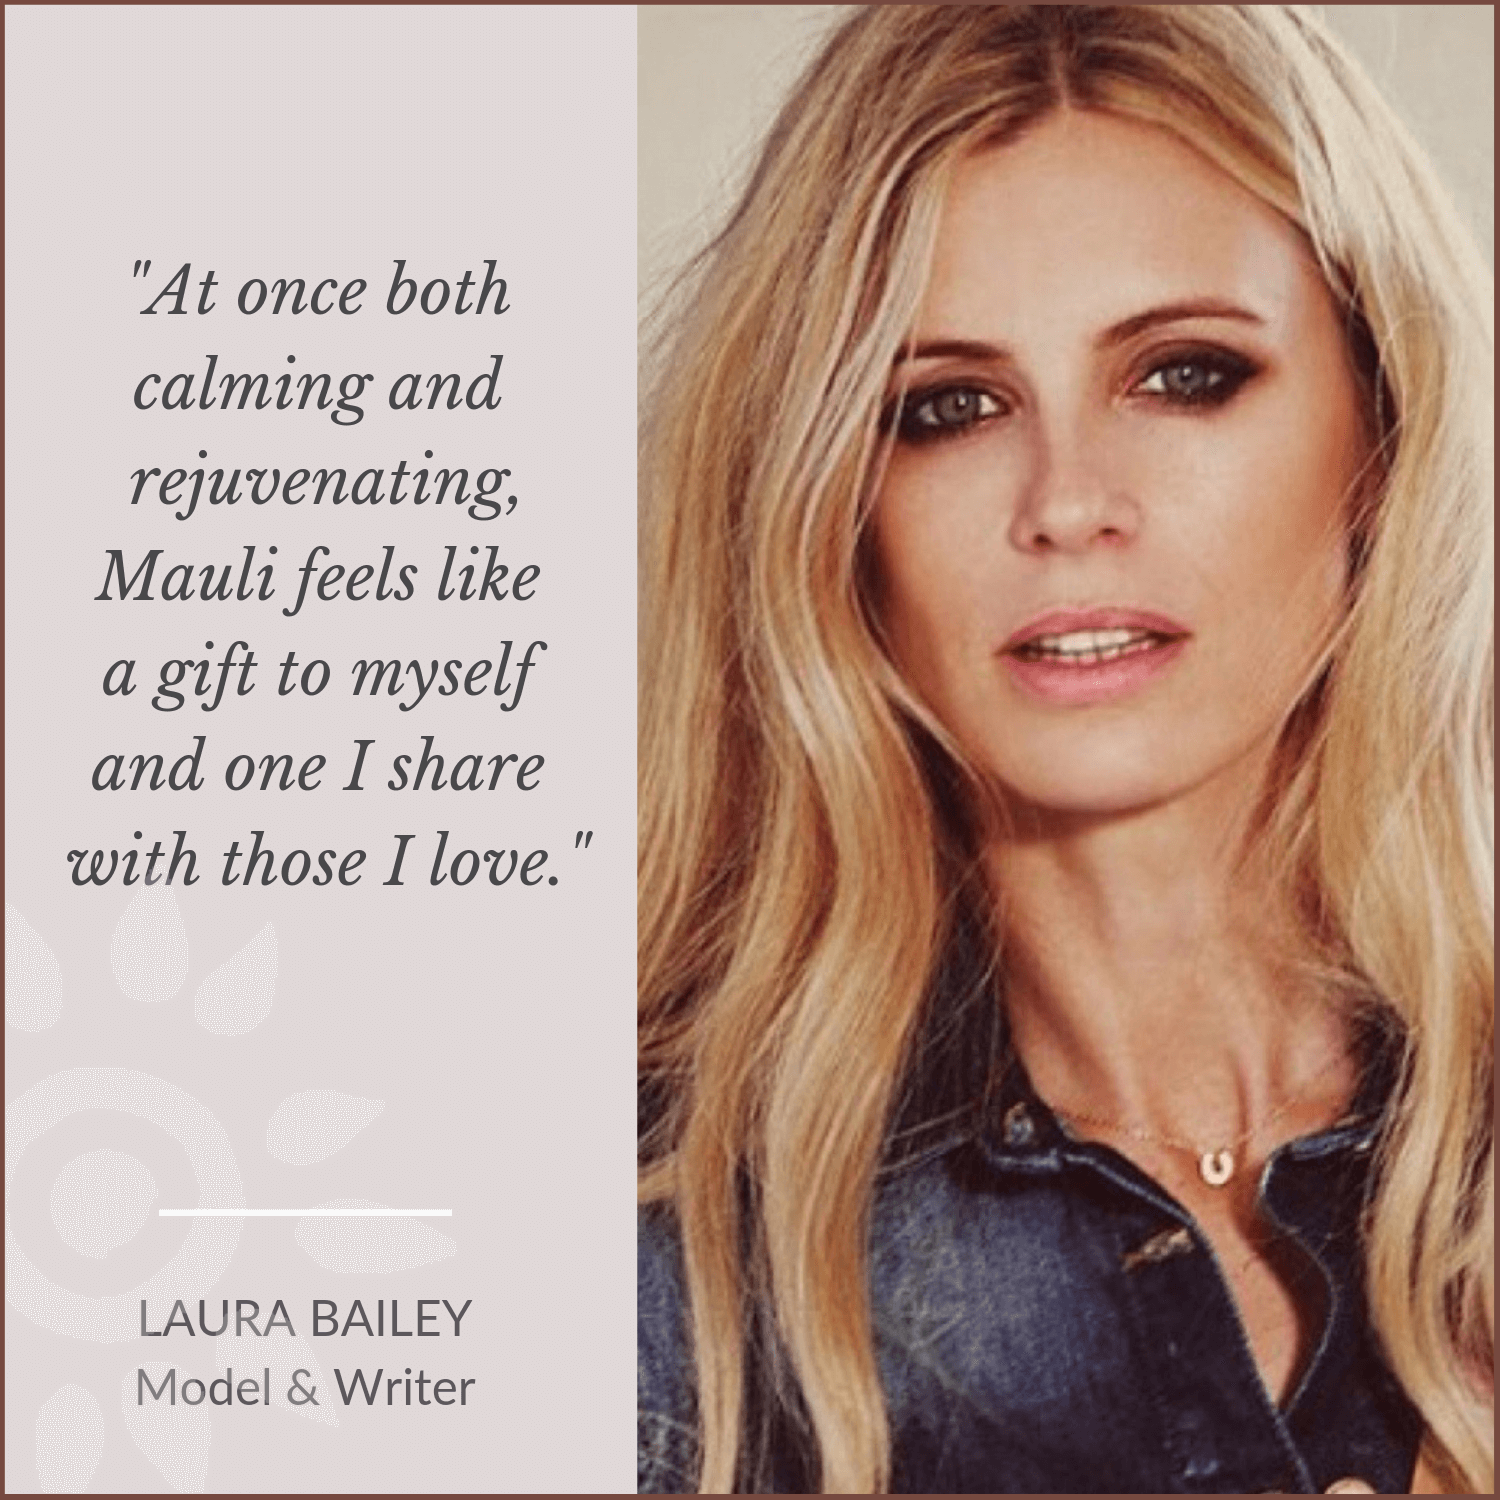 Laura Bailey for Mauli Love